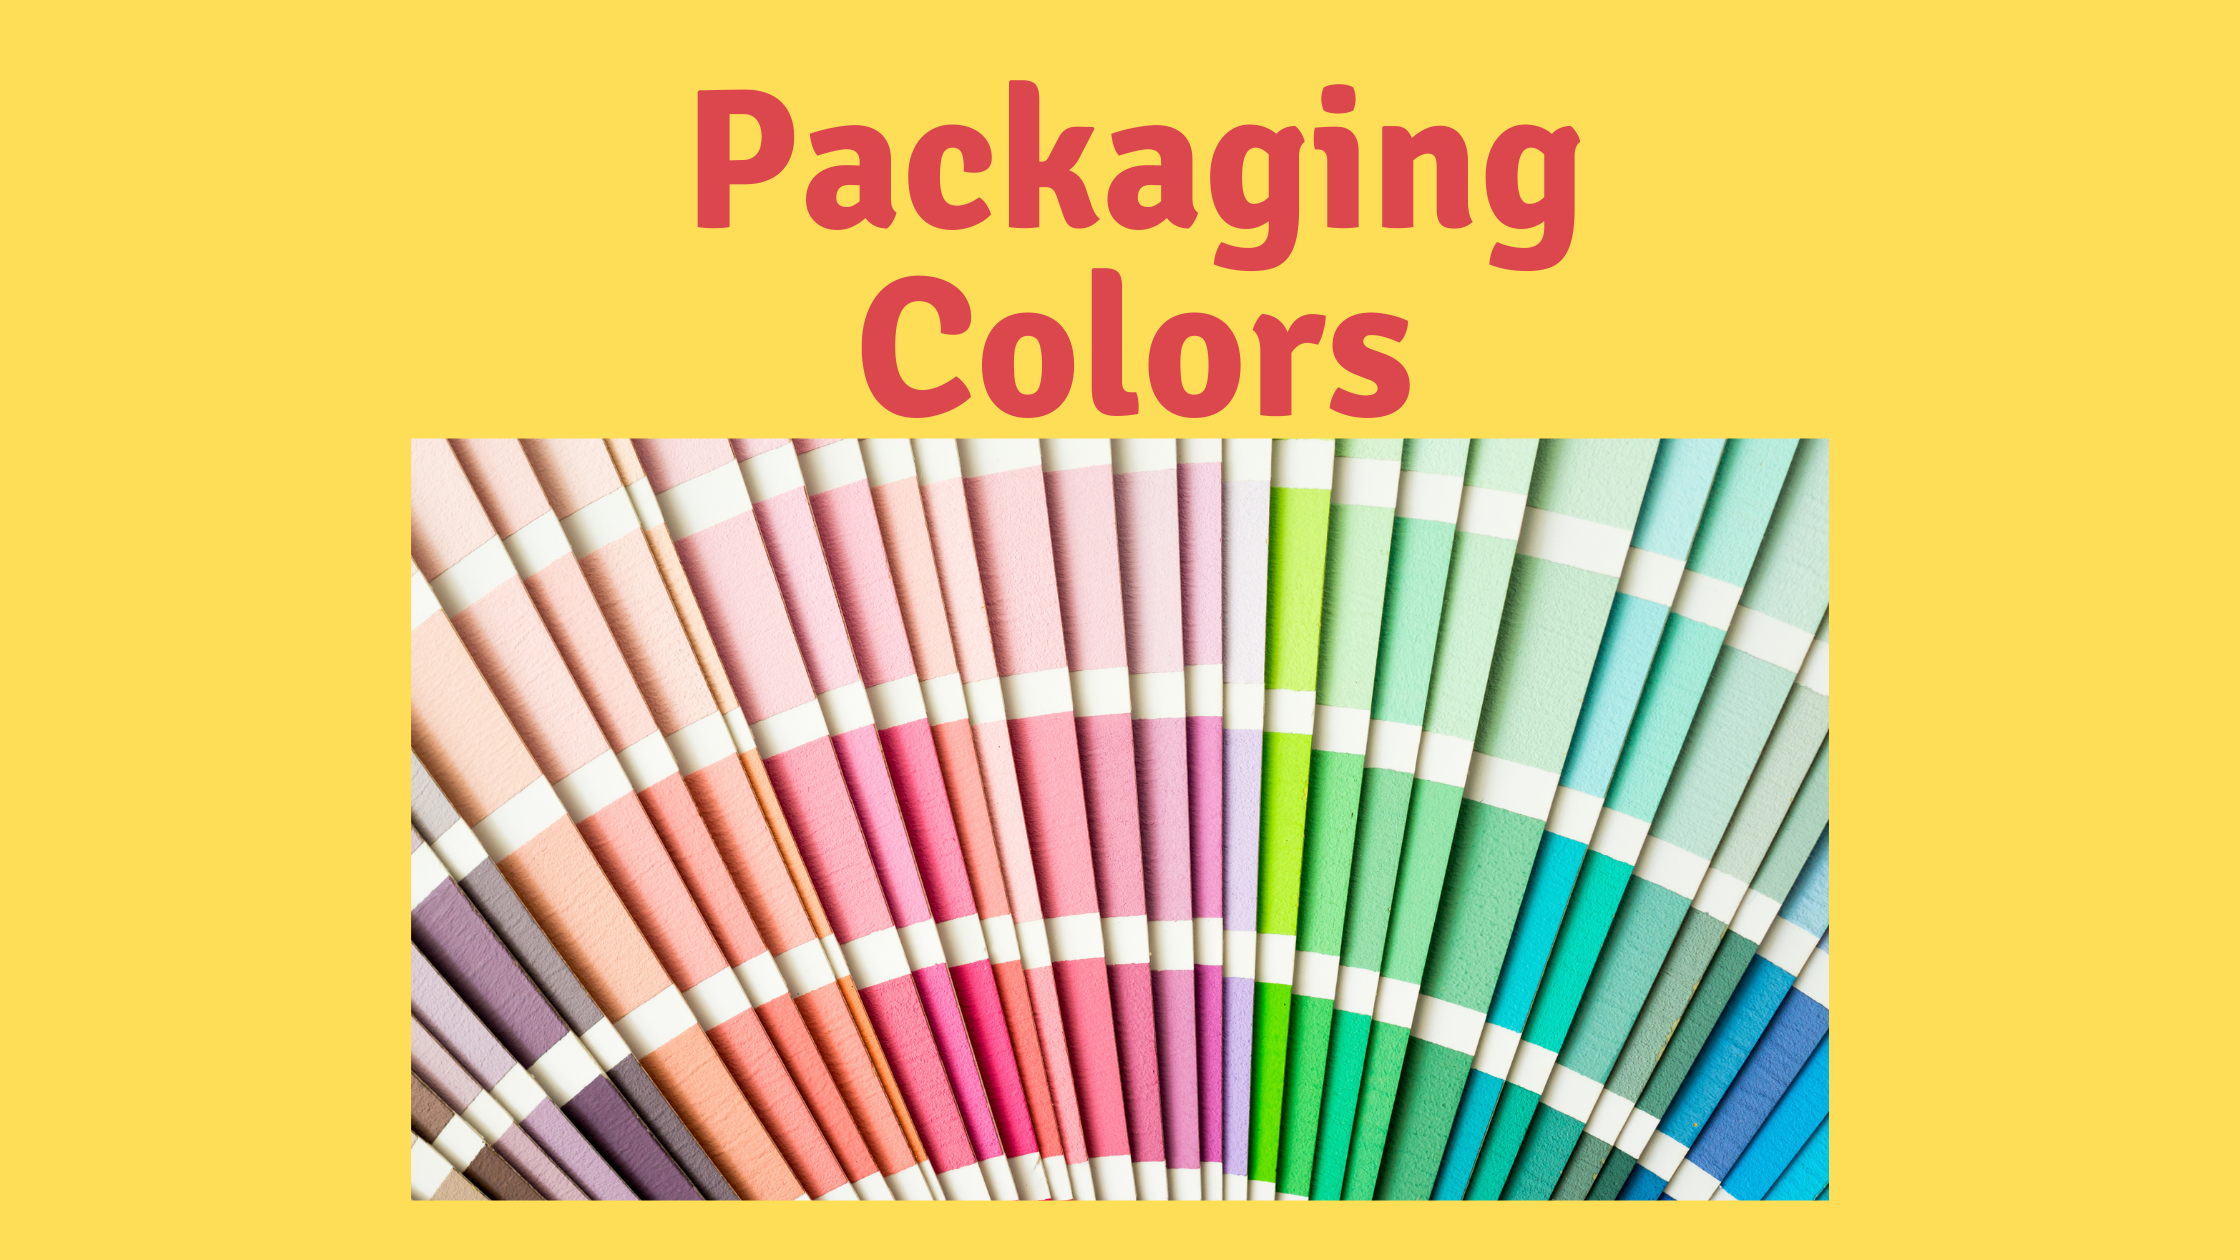 Best Way to Keep Your Food Business Relevant: Packaging Colors